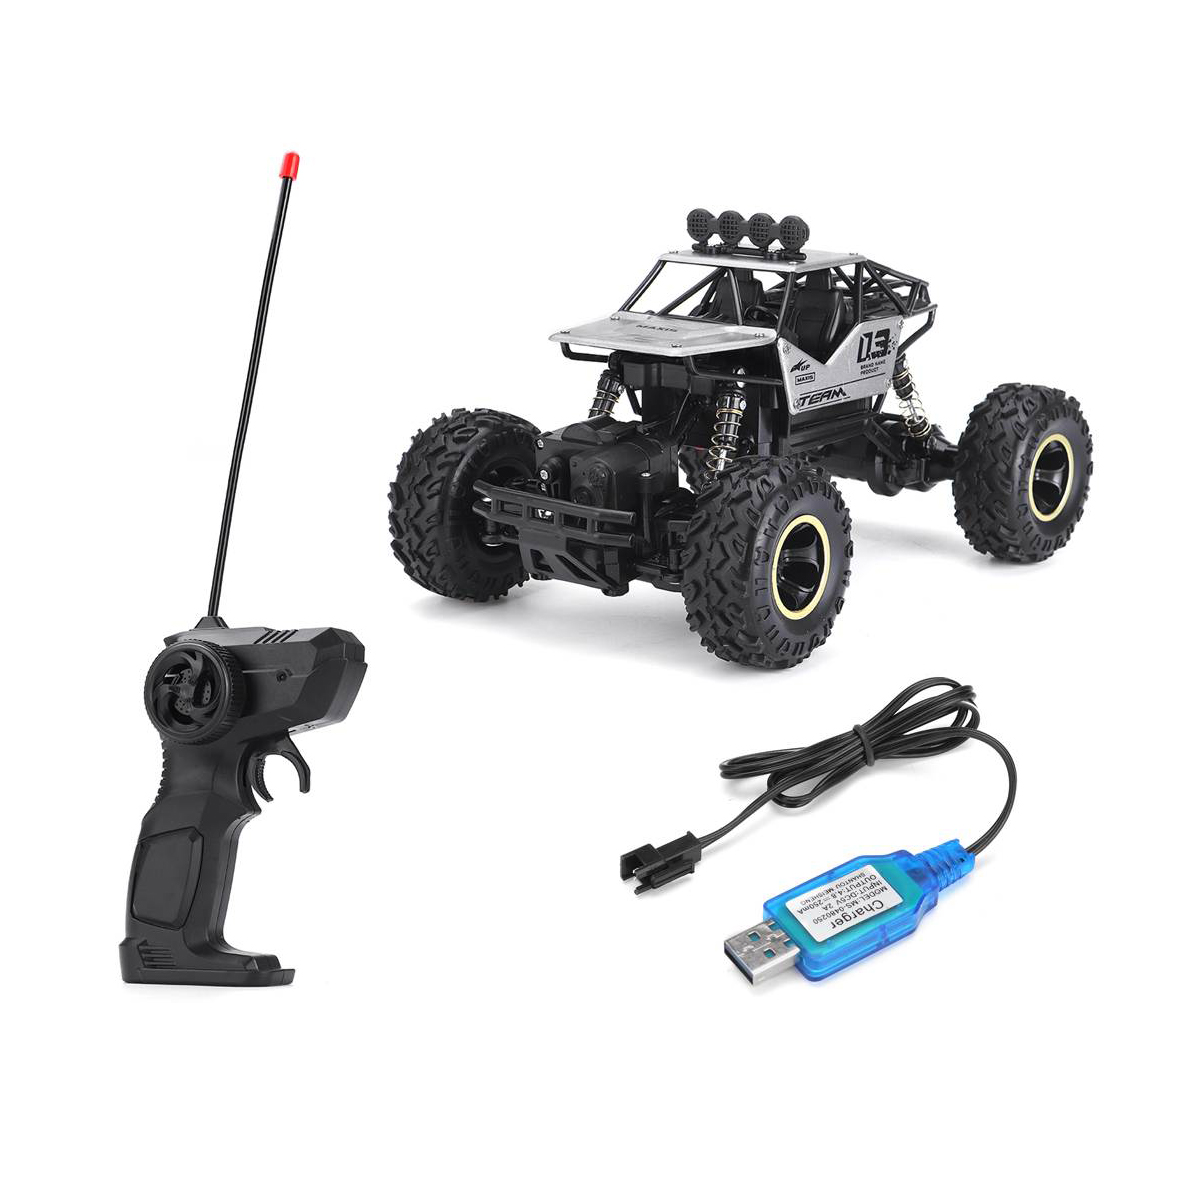 Remote controlled car rc 4wd updated version 2.4g radio remote control car